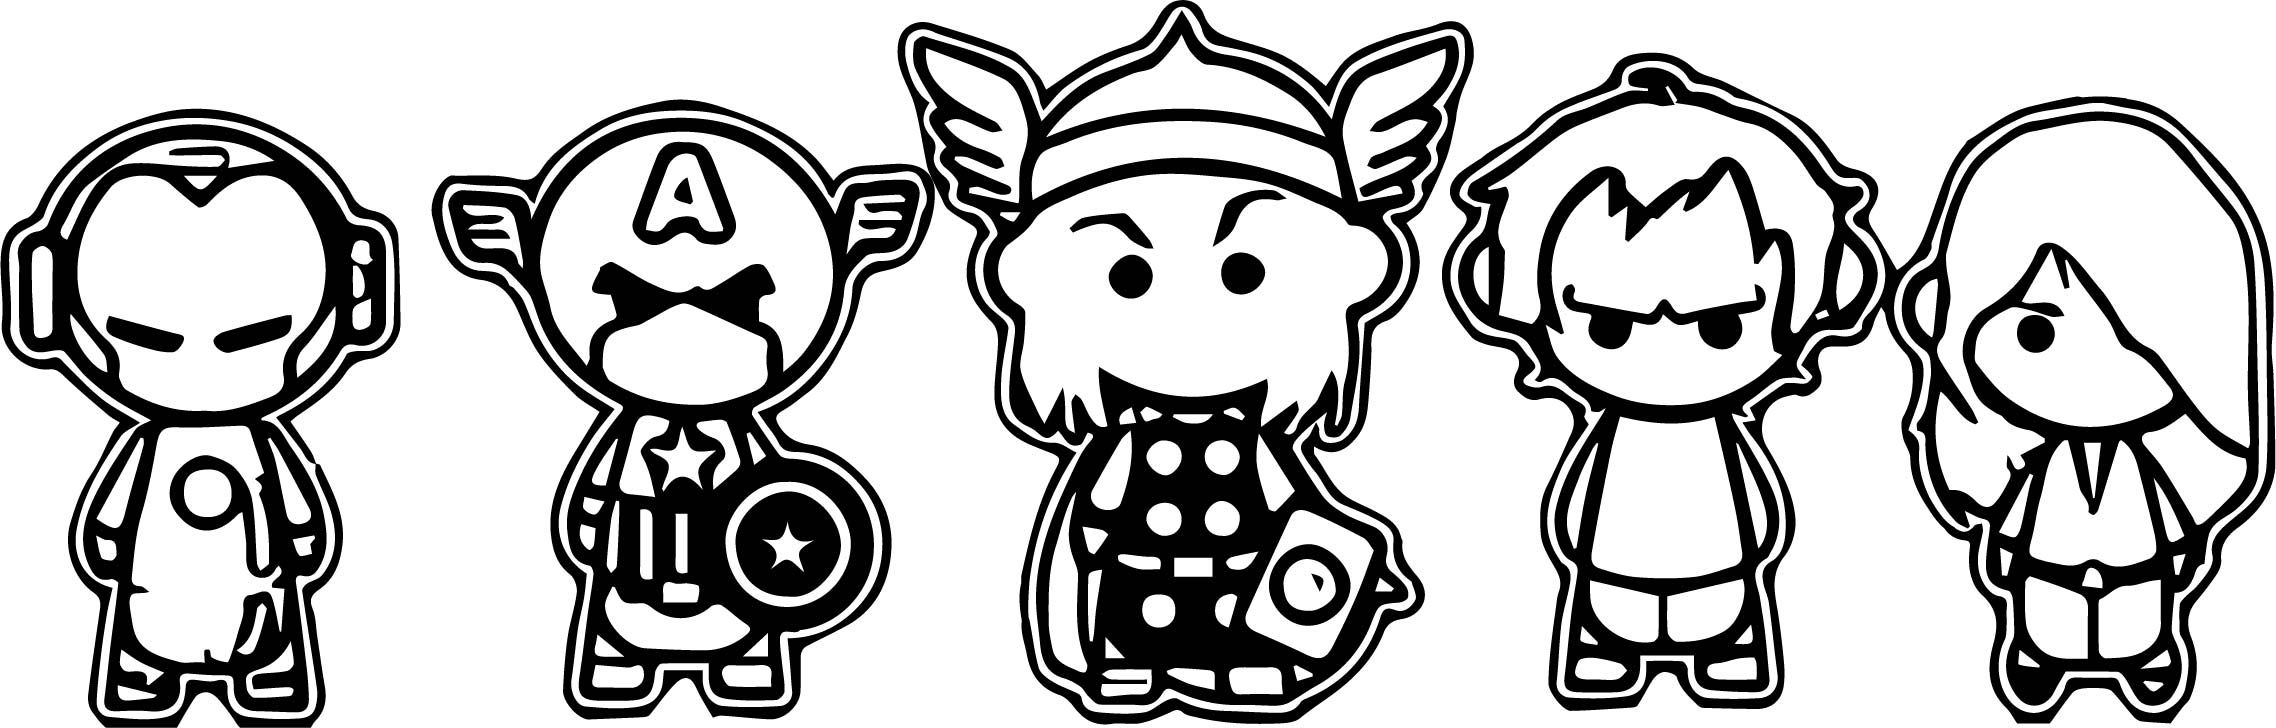 chibi avengers coloring pages chibi doctor strange to color avengers lineart by avengers coloring chibi pages